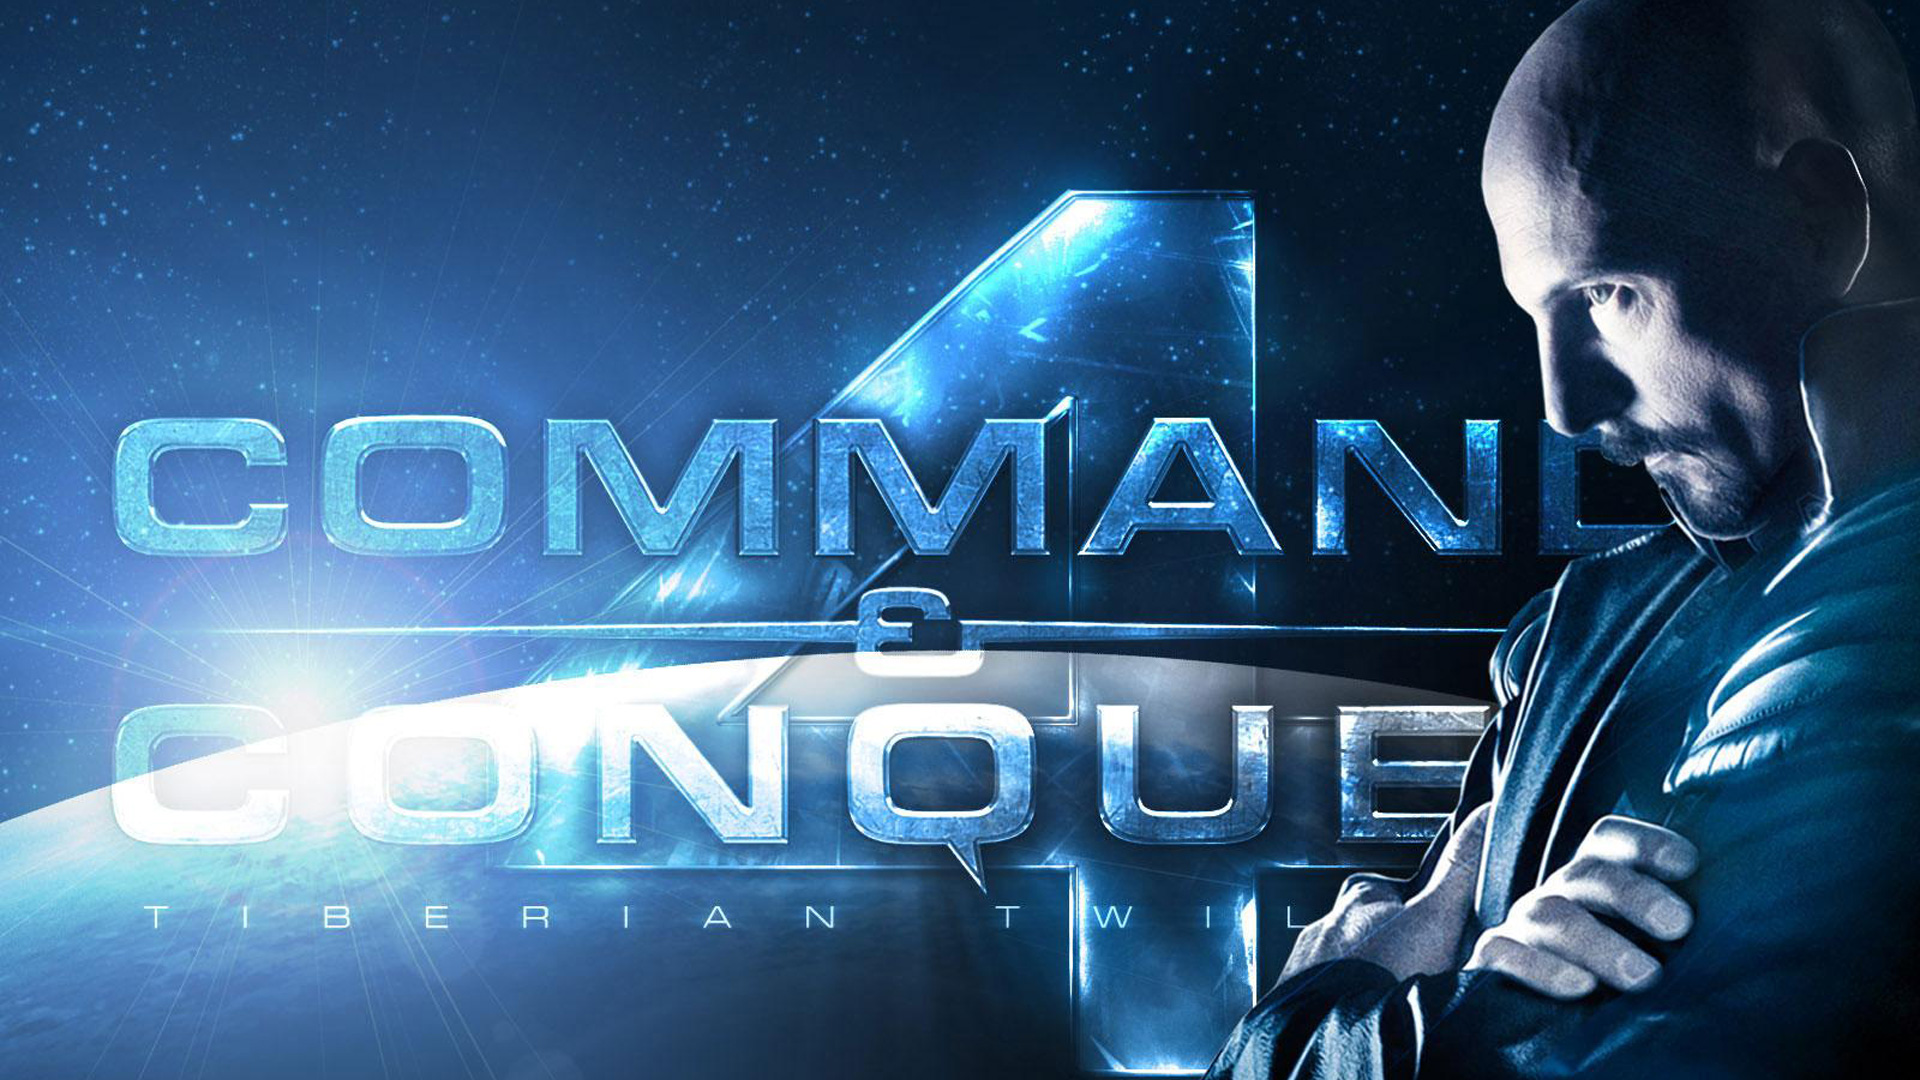 Free Command & Conquer 4 Wallpaper in 1920x1080